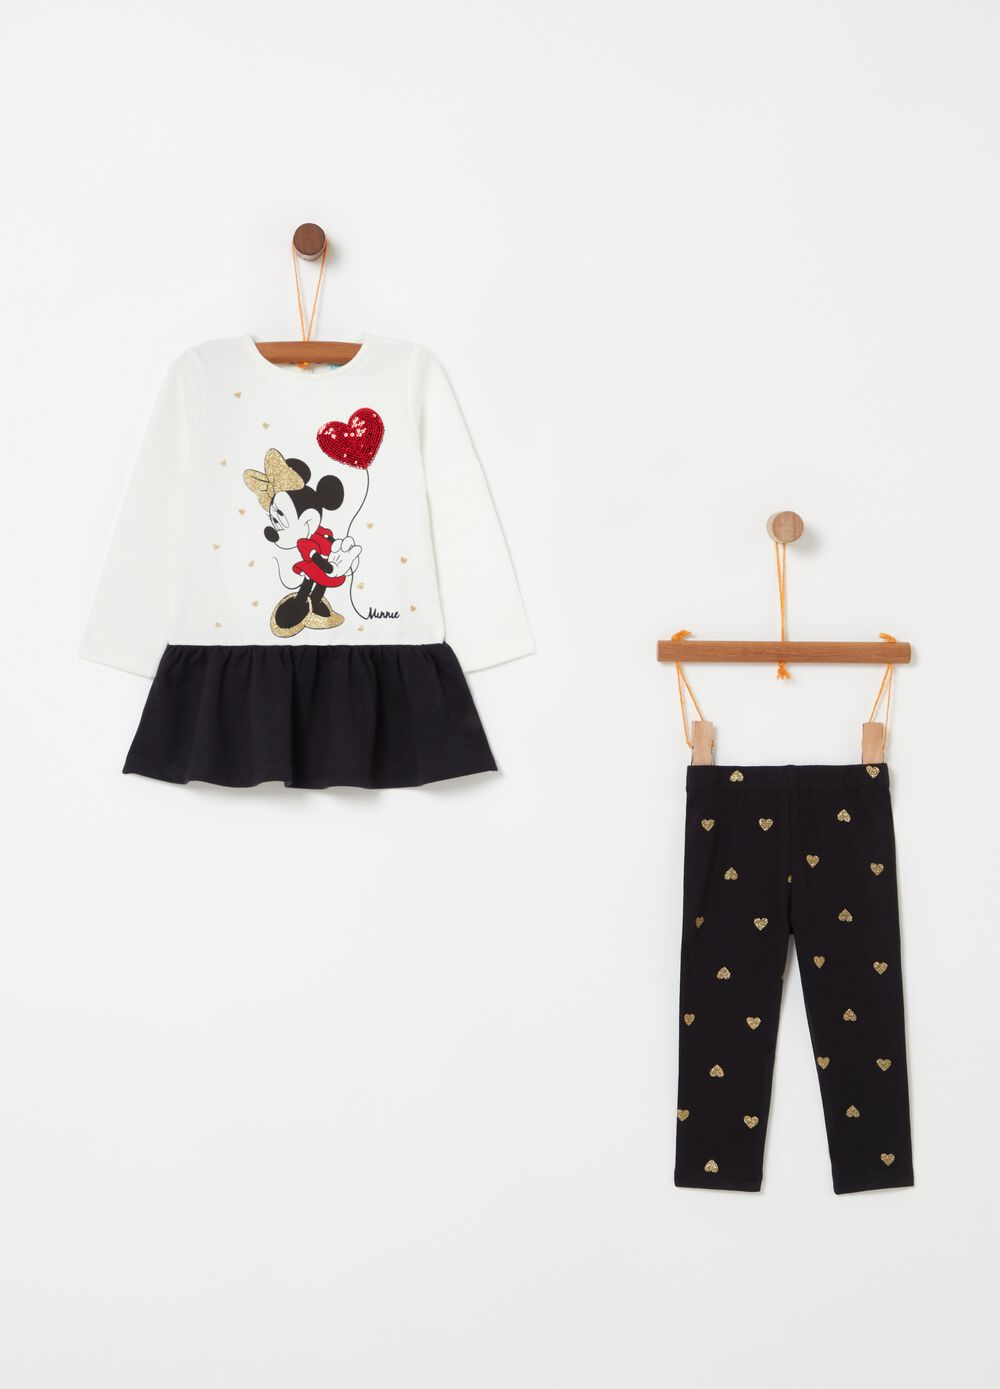 Disney Minnie Mouse outfit with dress and leggings